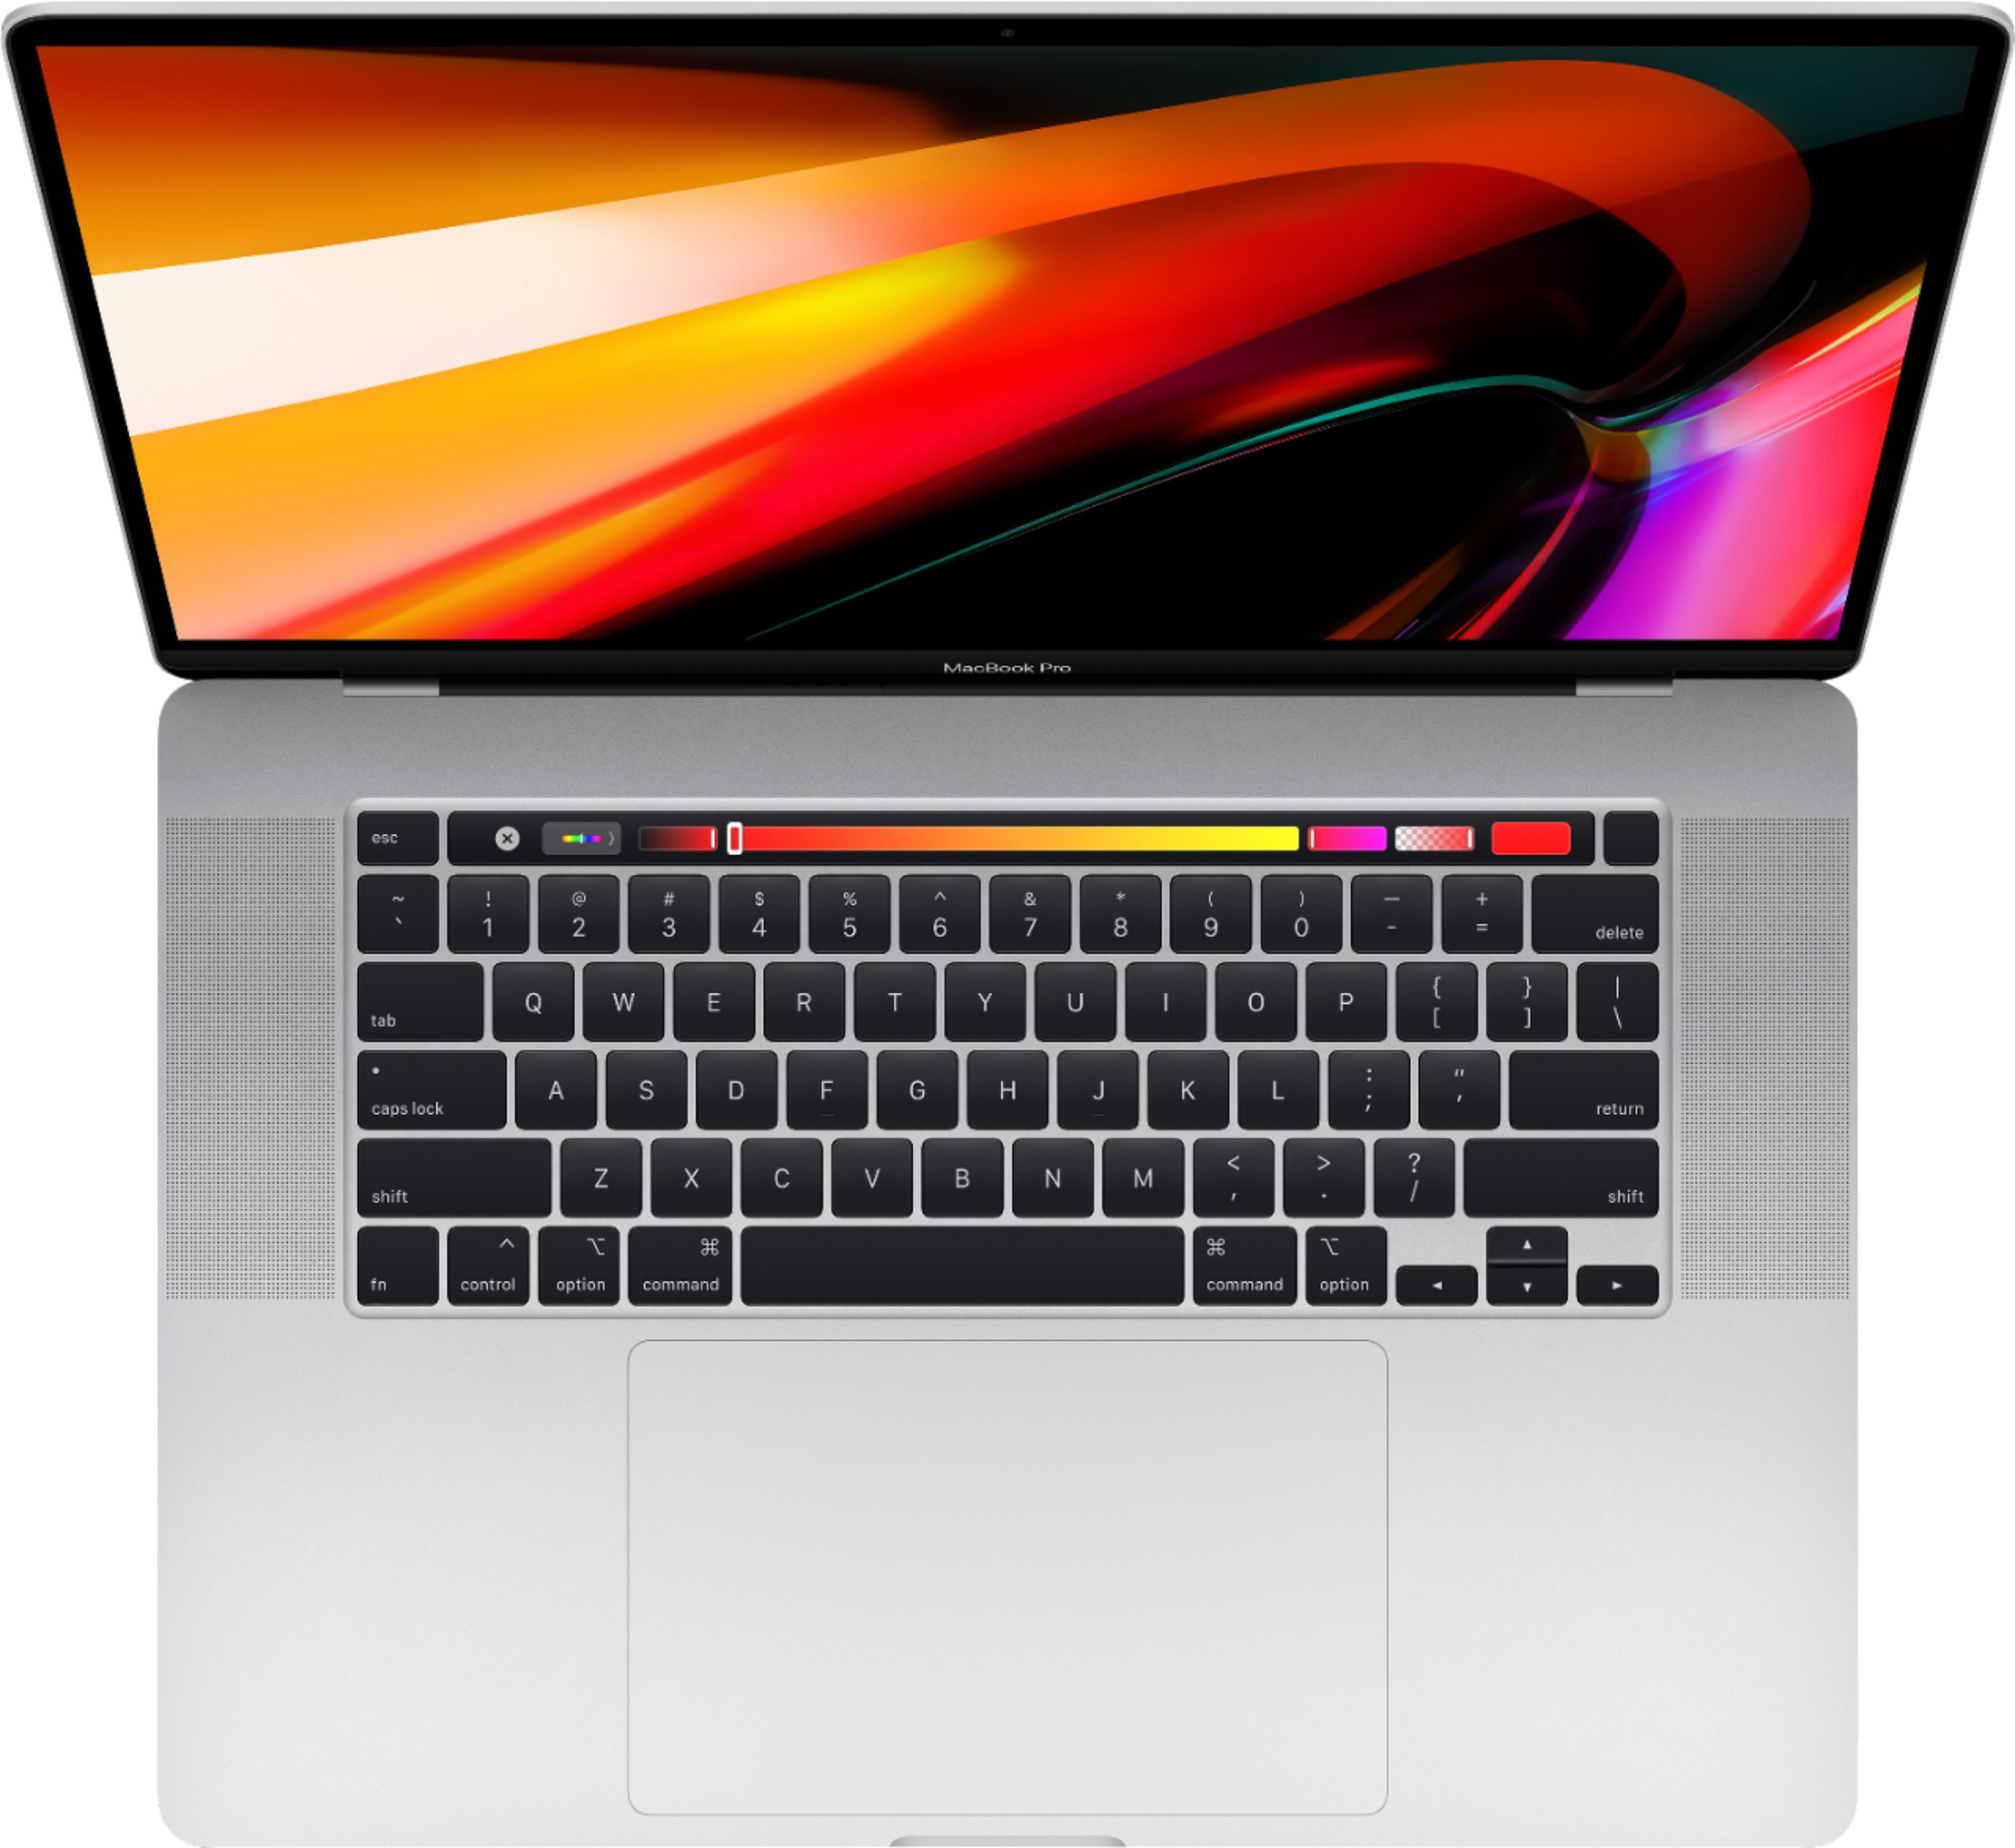 """Alt View Zoom 11. Apple - MacBook Pro - 16"""" Display with Touch Bar - Intel Core i7 - 16GB Memory - AMD Radeon Pro 5300M - 512GB SSD (Latest Model) - Silver."""